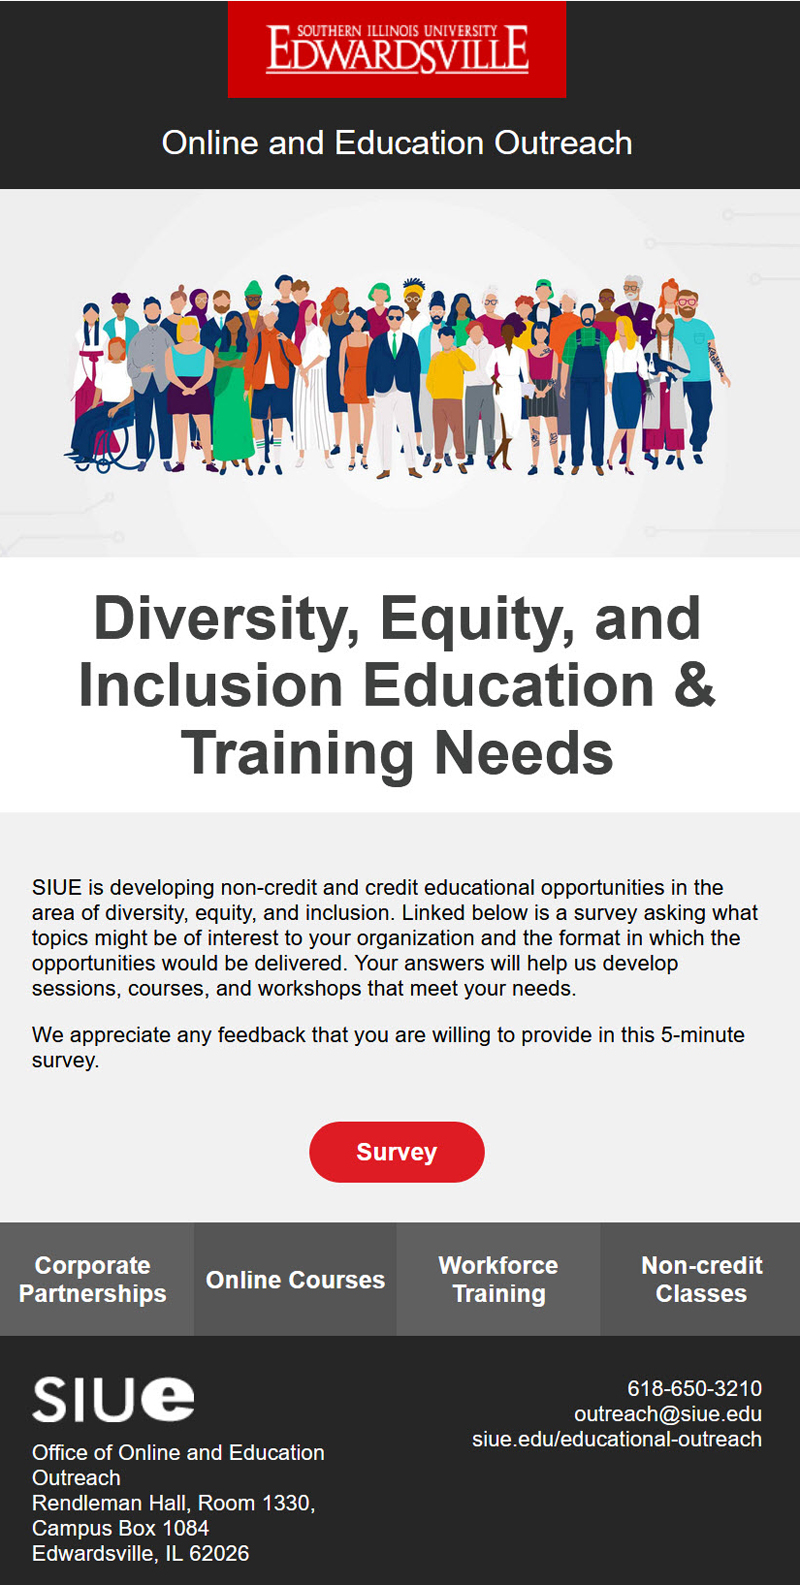 SIUE Online and Education Outreach